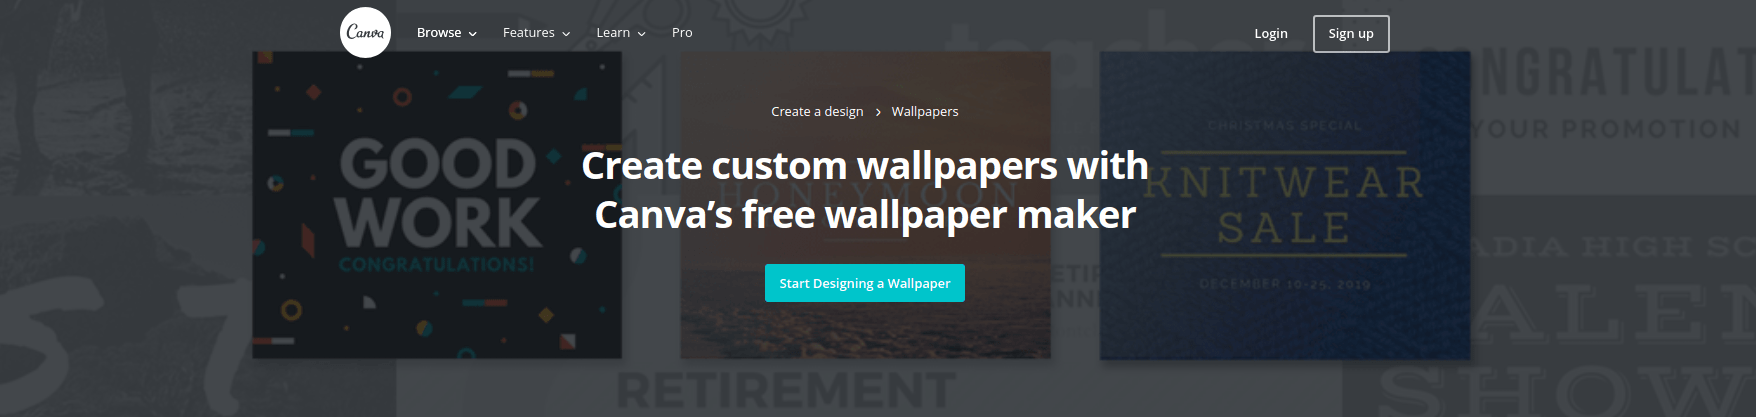 Different Ways To Create A Wallpaper Using A Free Wallpaper